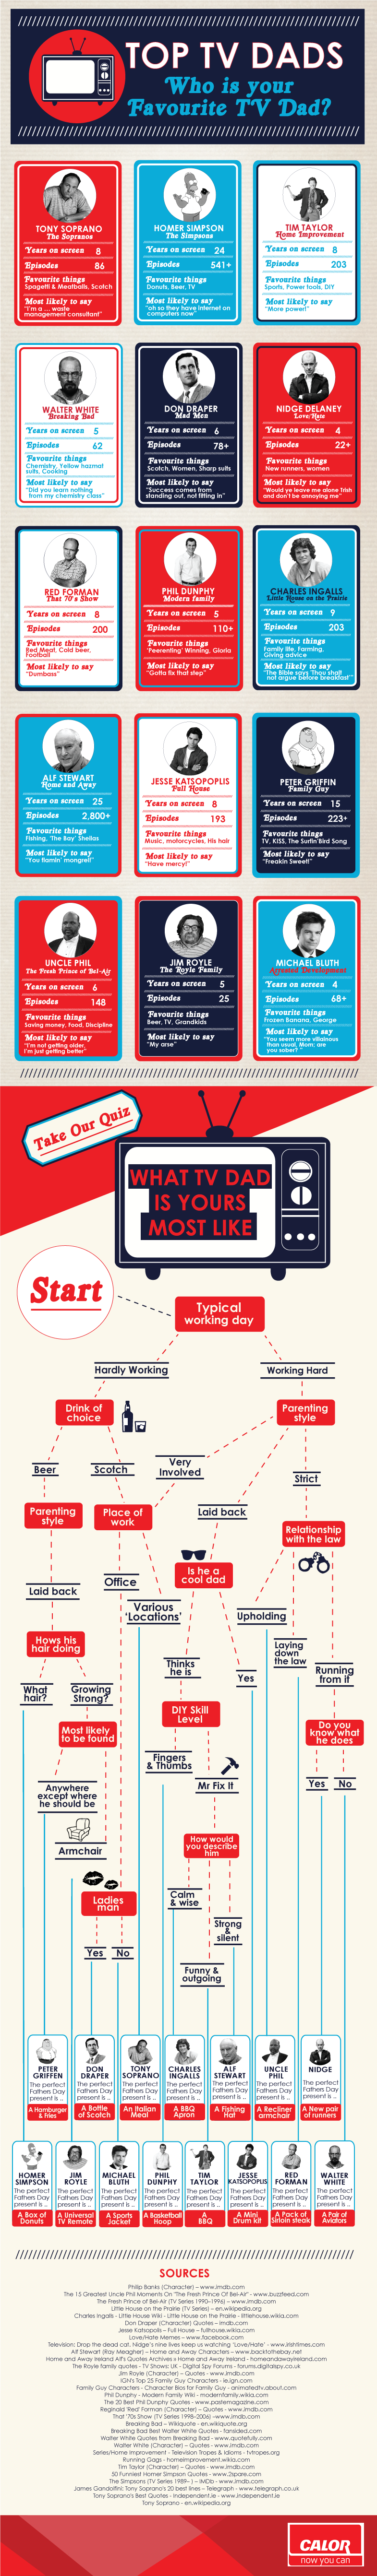 The World's Top TV Dads